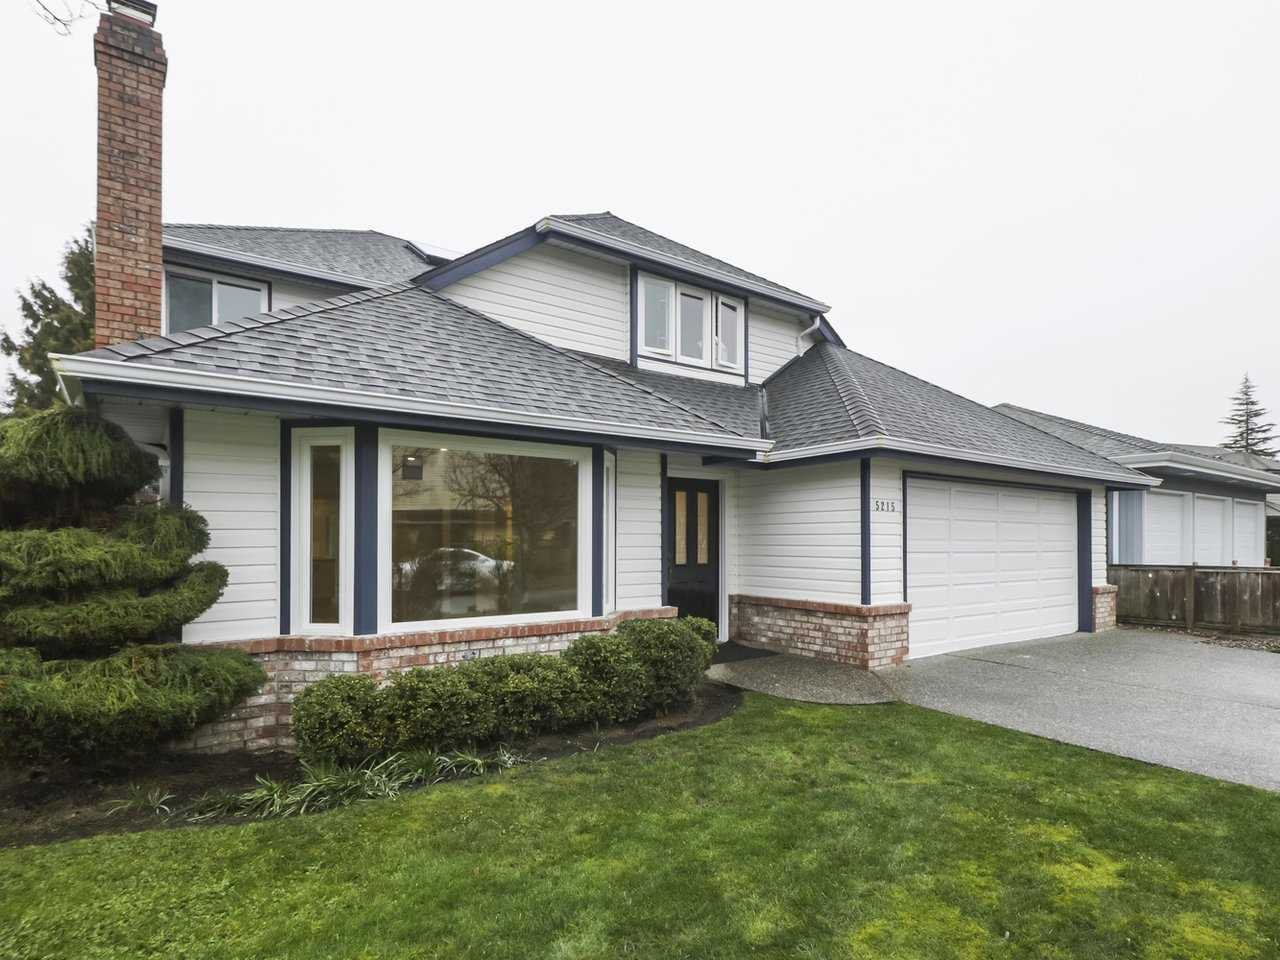 Main Photo: 5215 BENTLEY Crescent in Delta: Hawthorne House for sale (Ladner)  : MLS®# R2442554